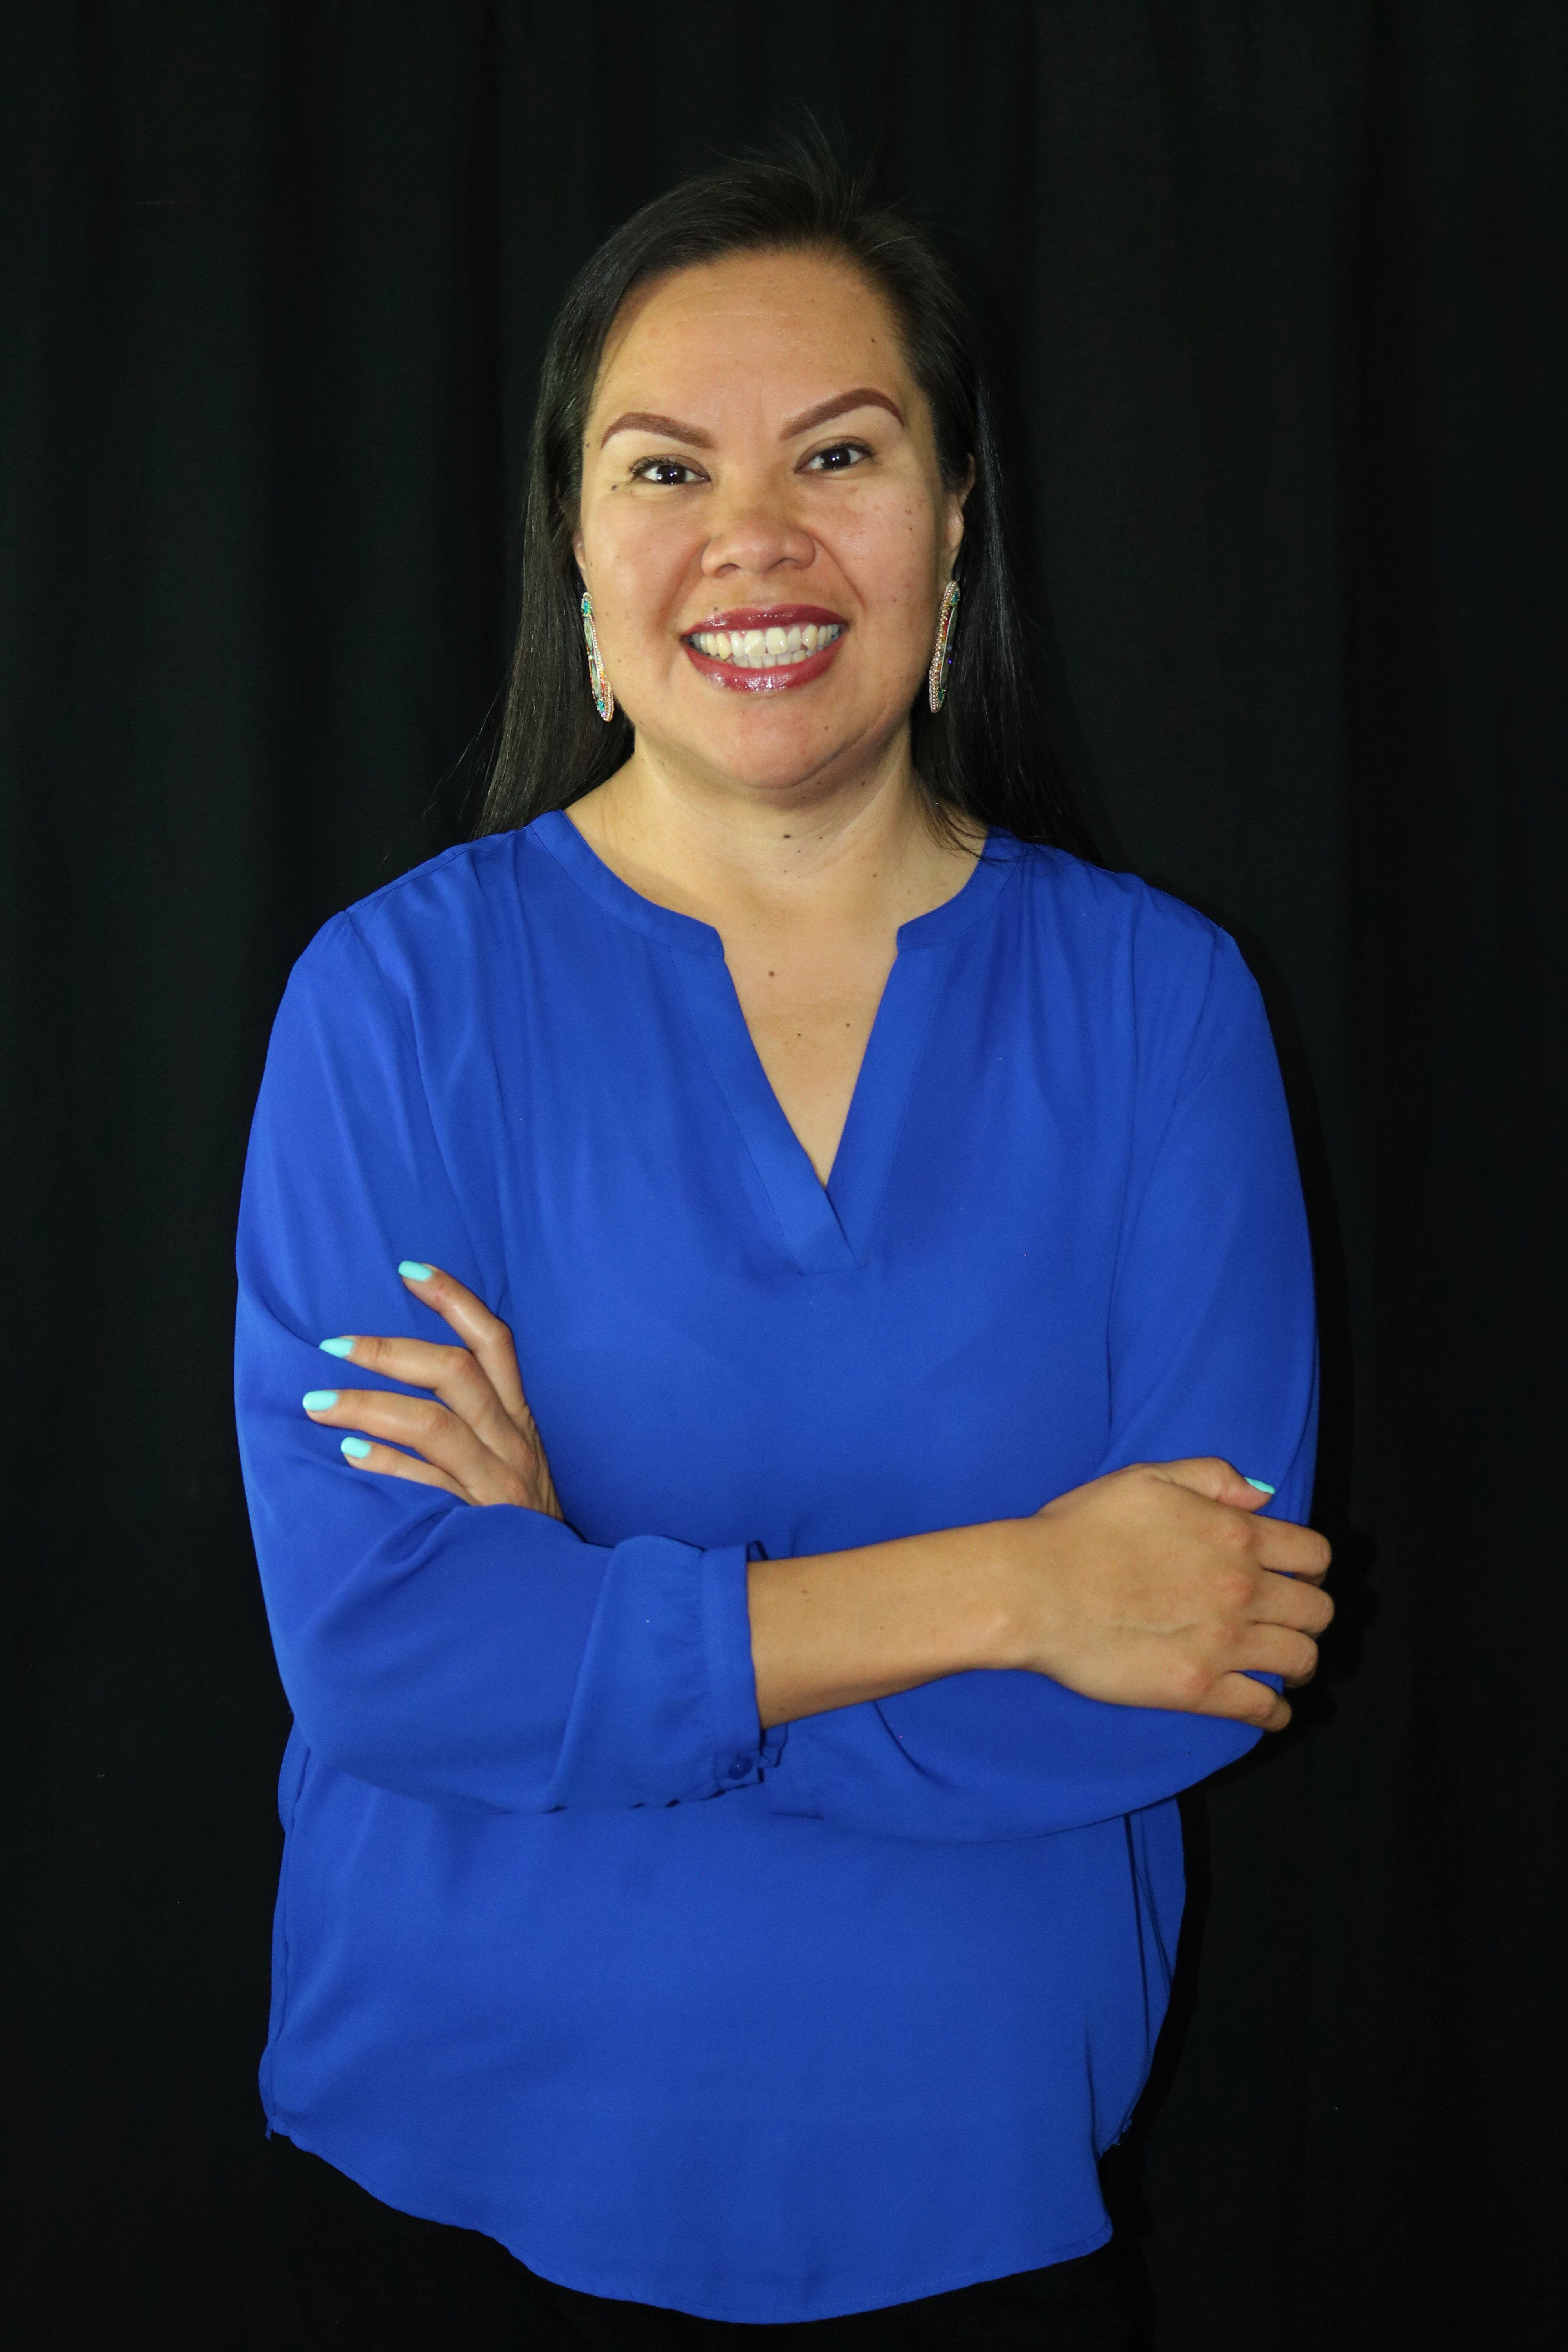 Citizen of Cheyenne and Arapaho Tribes new professor at OU